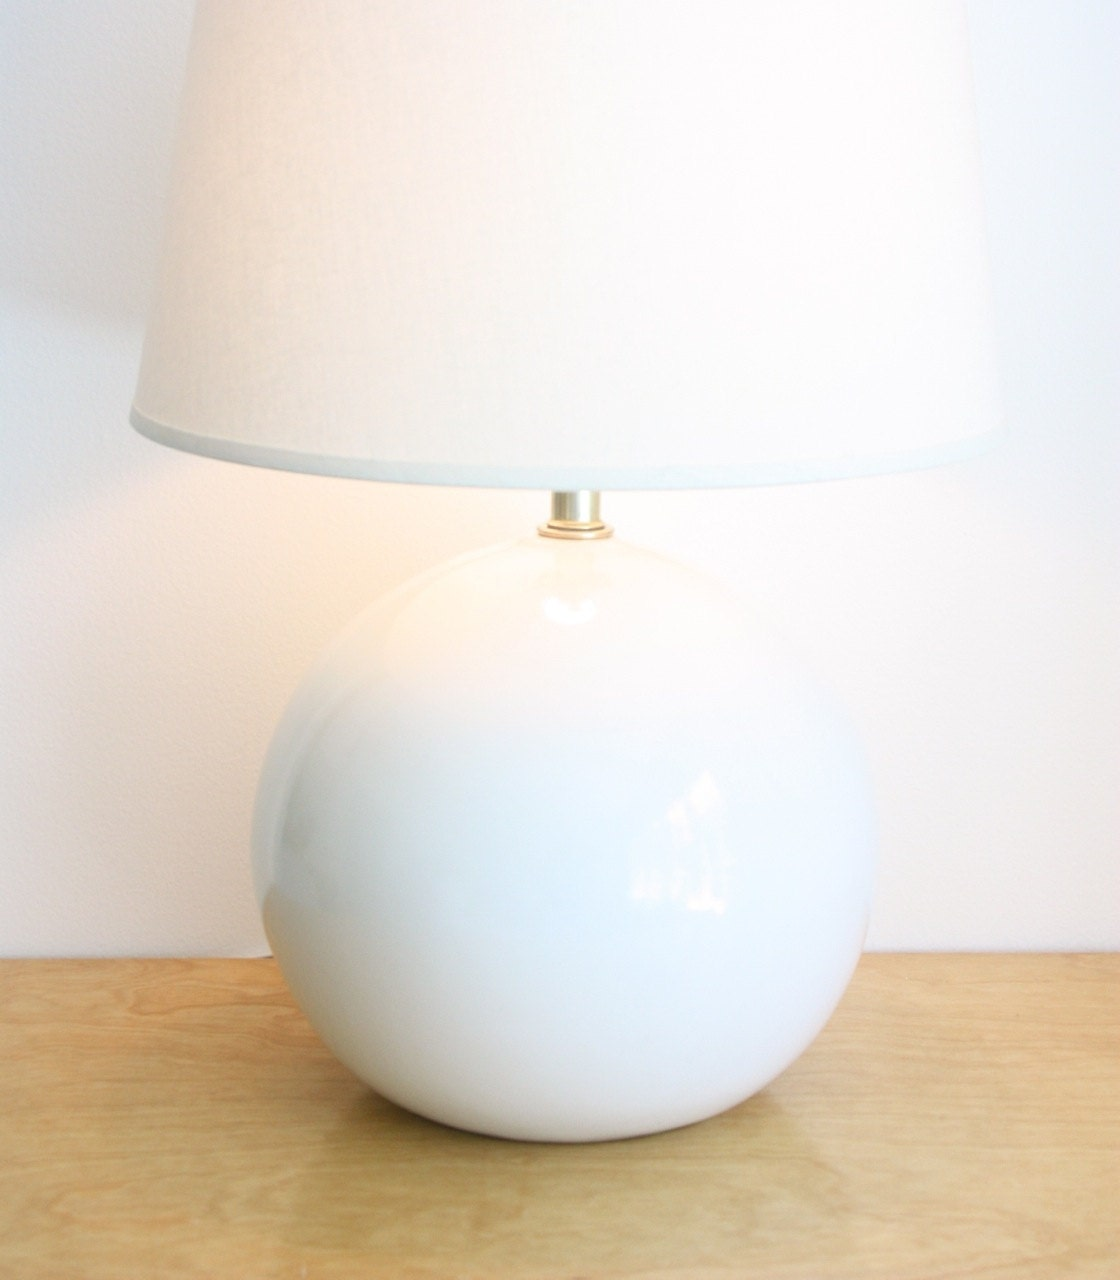 Quoizel table lamps endon dahlia tlch refined dahlia ceramic ceramic table lamps on vintage white ceramic ball table lamp by estateeclectic on etsy geotapseo Choice Image